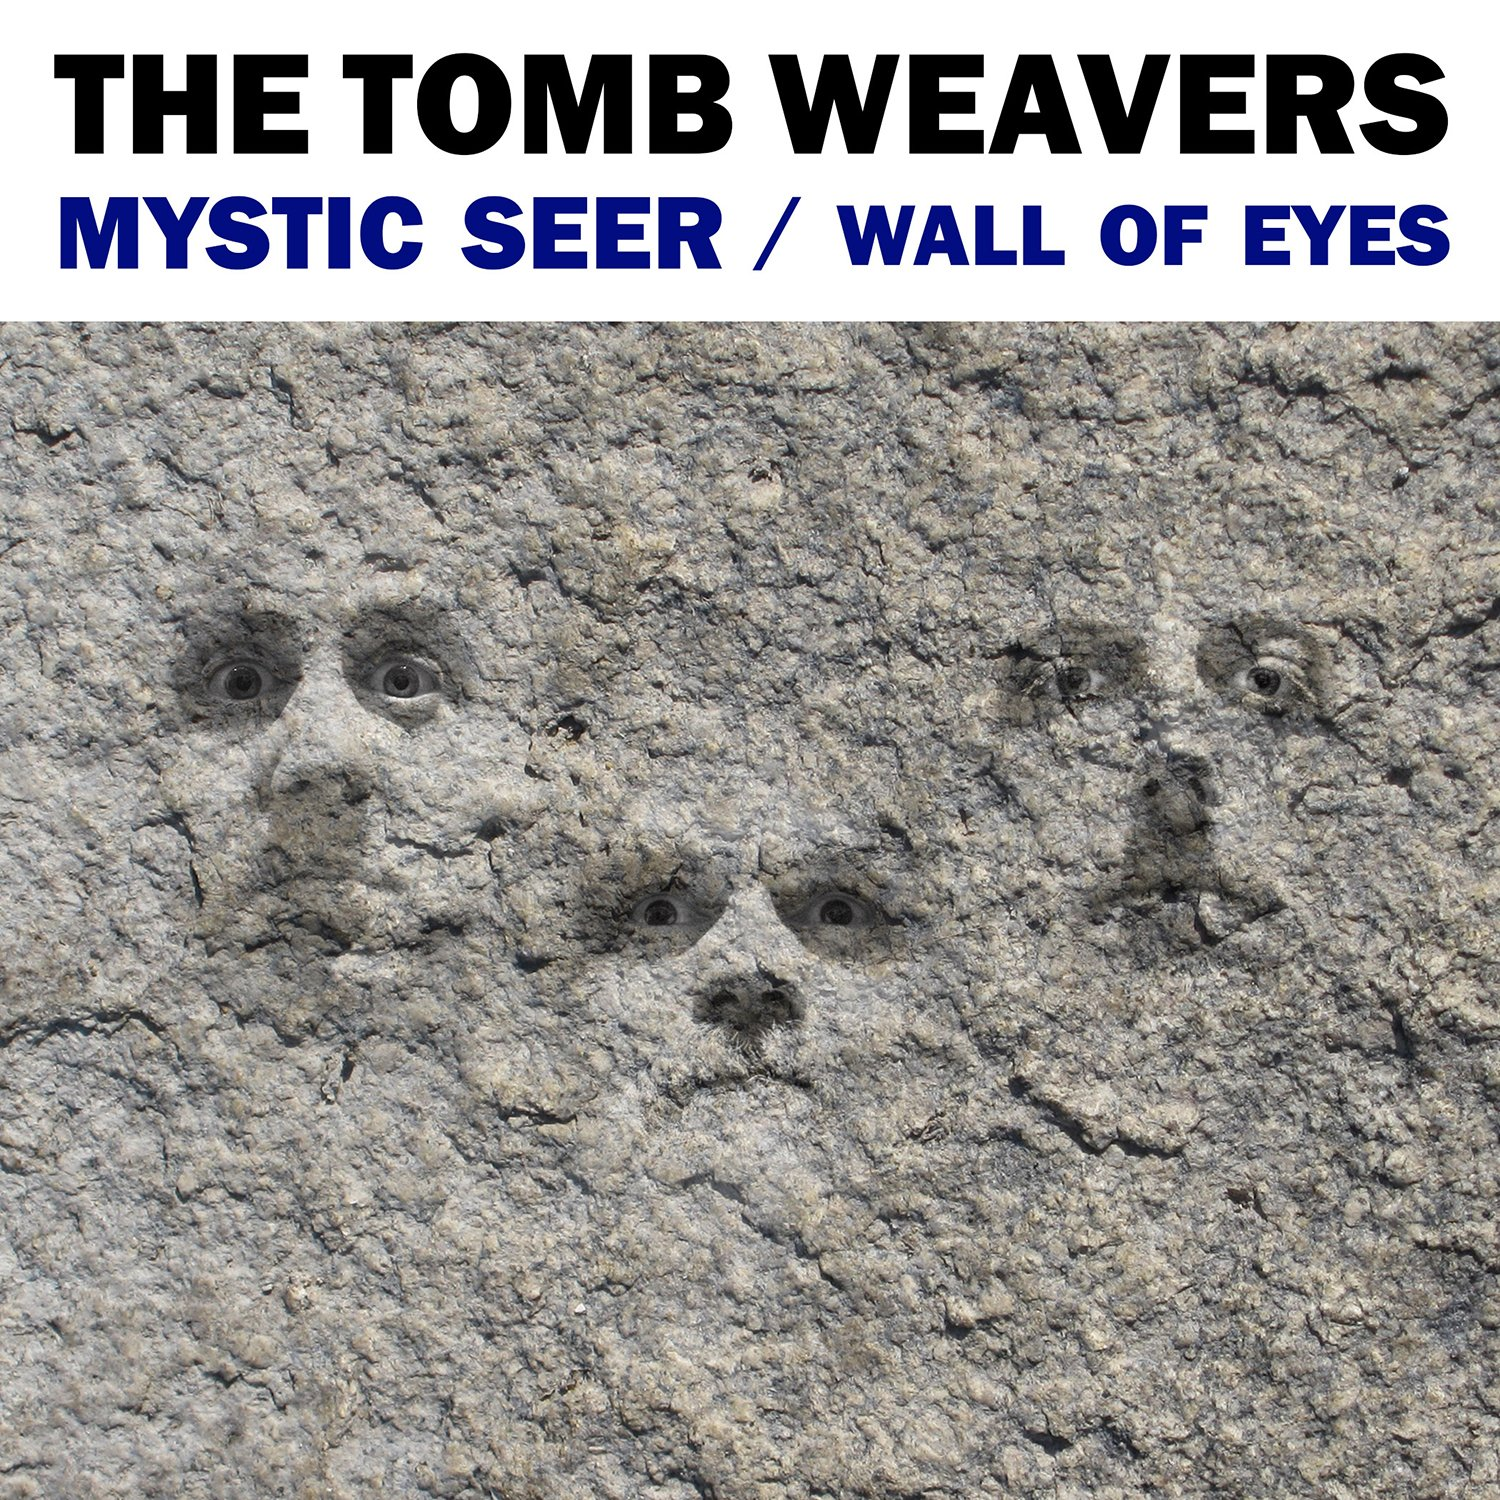 Cassette : The Tomb Weavers - Wall Of Eyes / Mystic Seer (7 Inch Single)